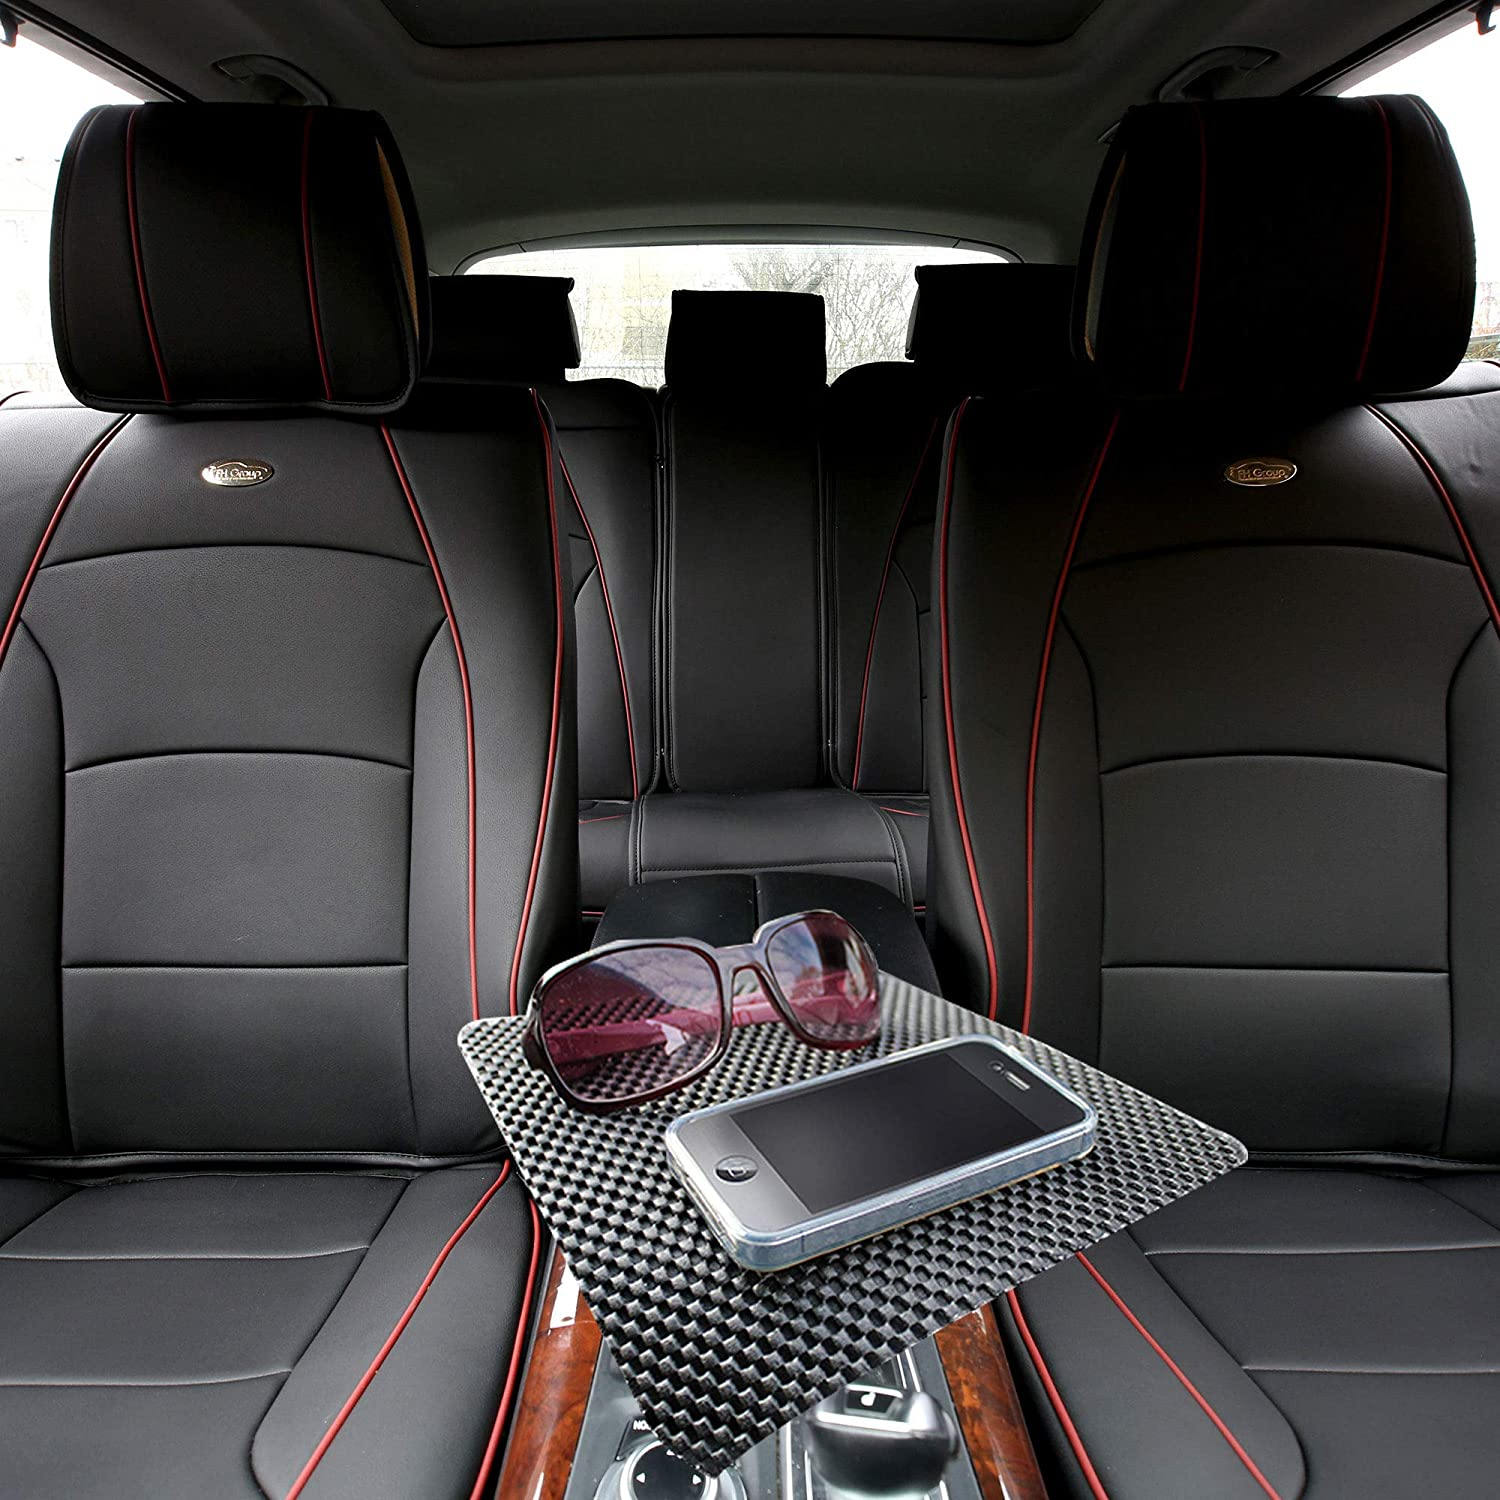 TLH Ultra Comfort Leatherette Seat Cushions Full Set, Black Red Trim Color w/Non Slip Dash Mat